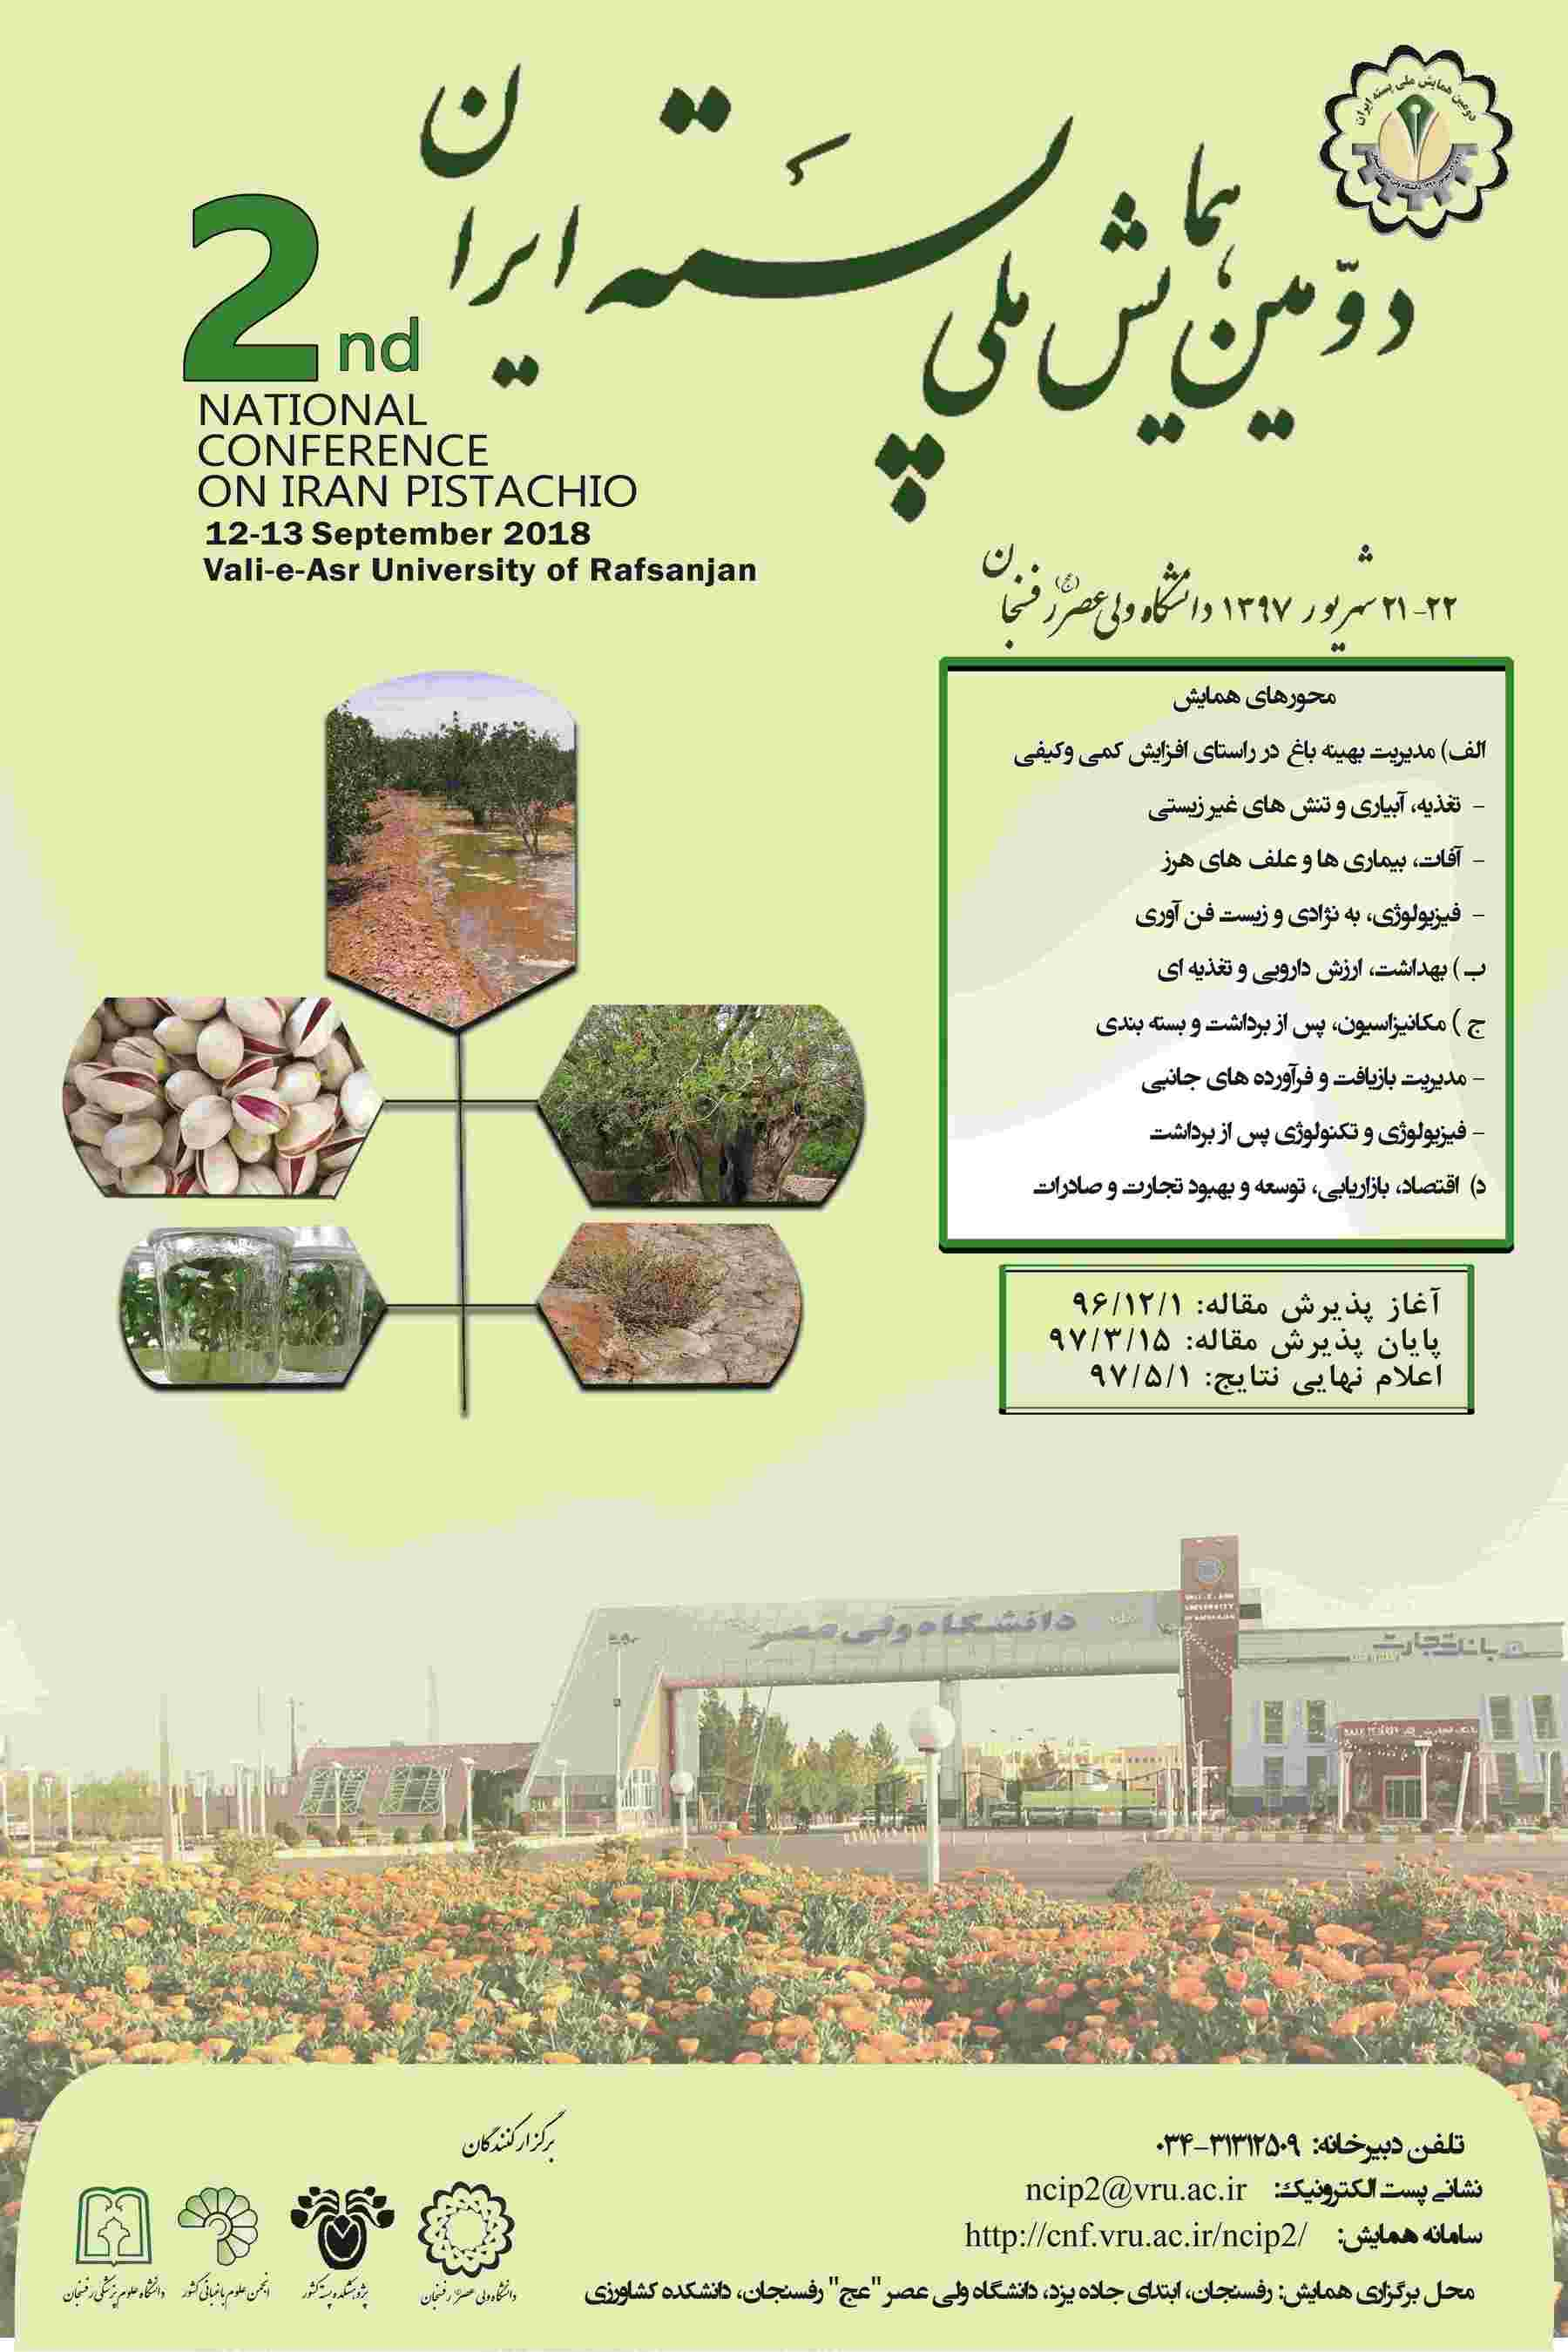 2nd National Conference on Iran Pistachio